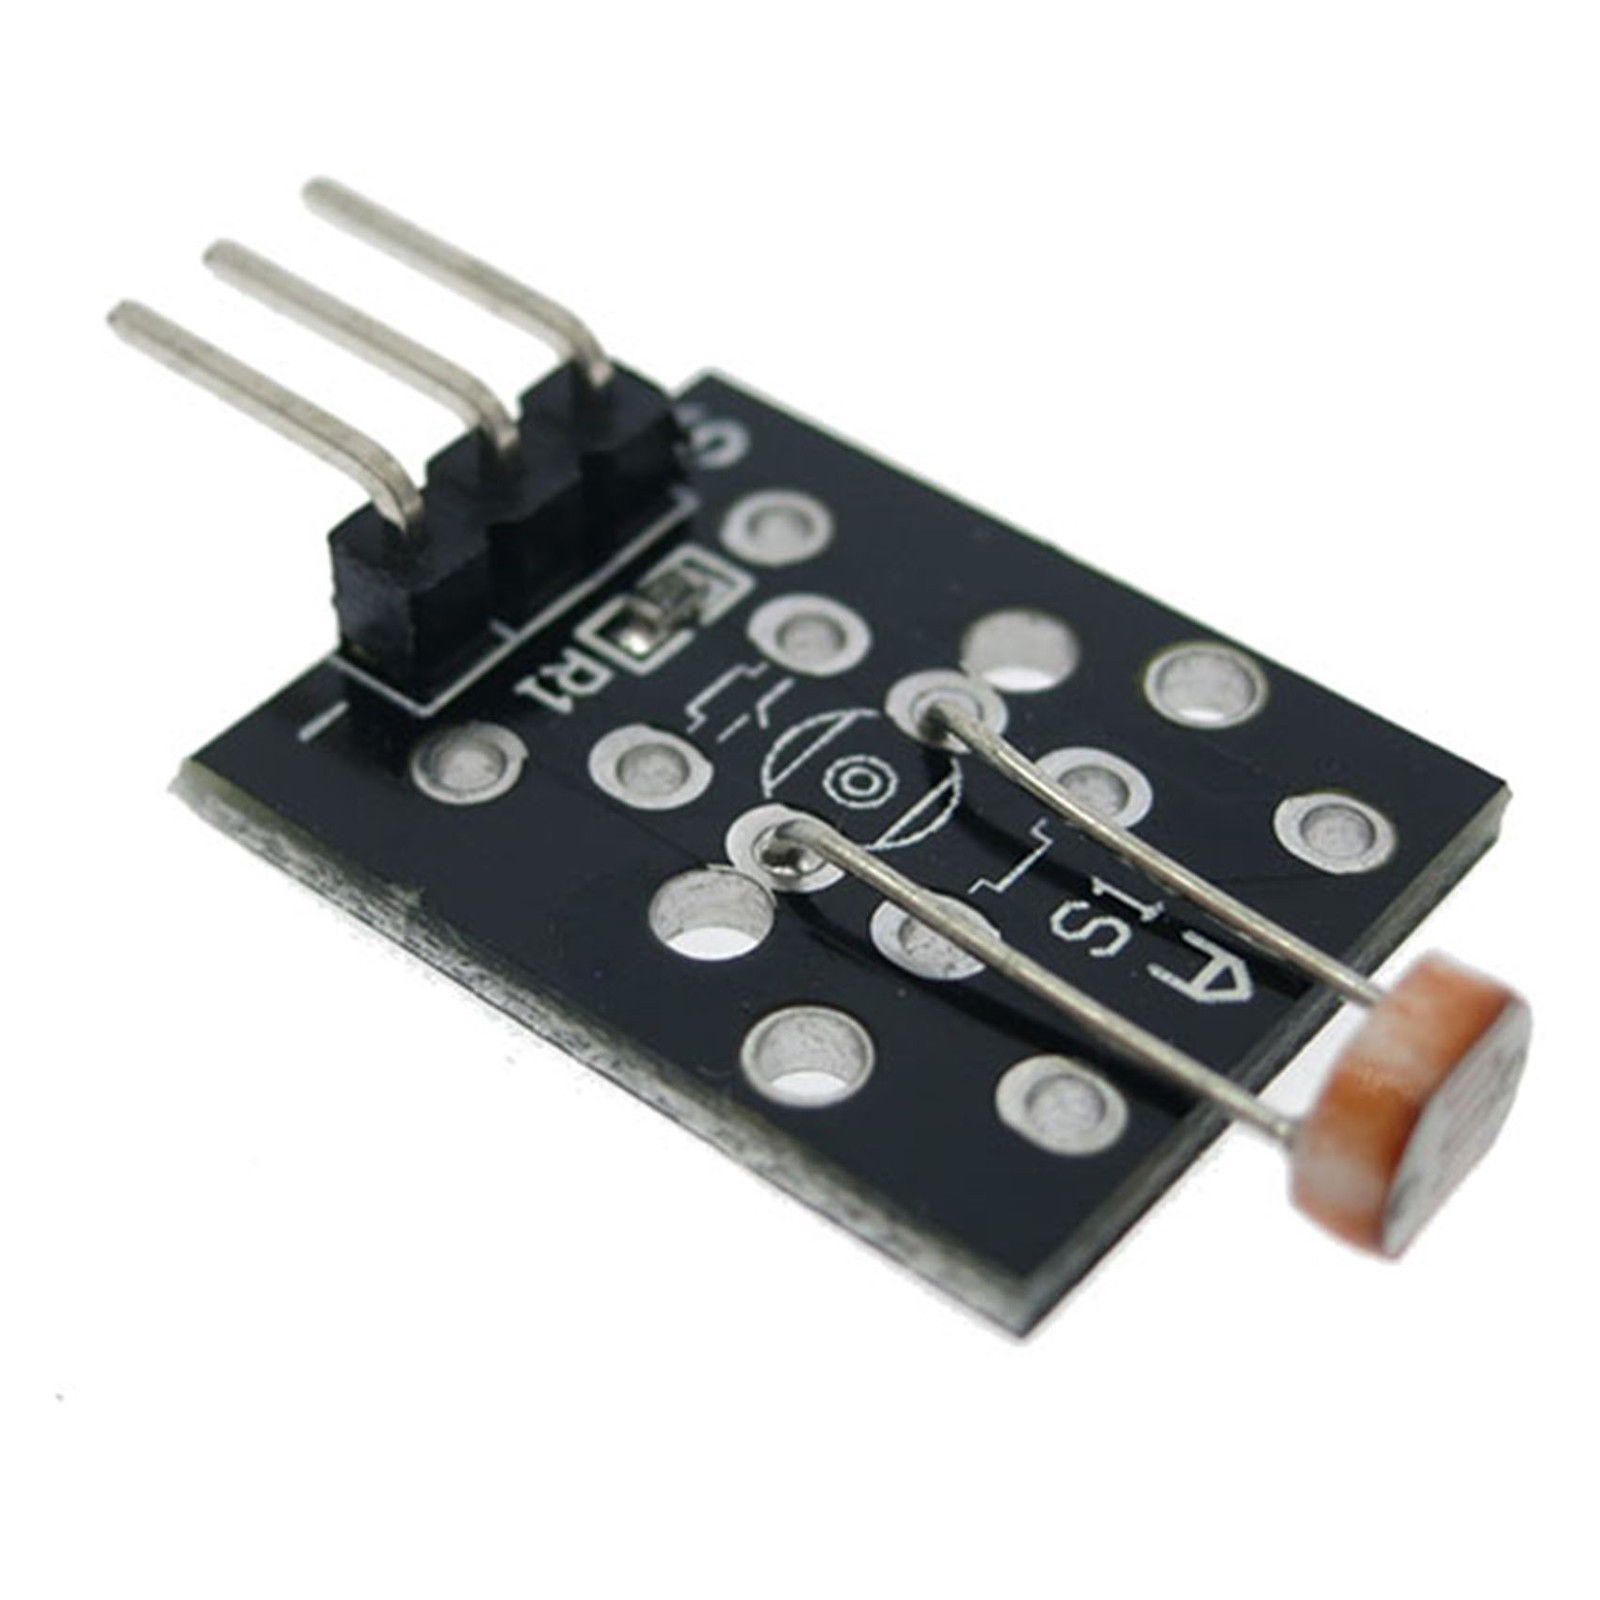 KY-018 LDR Photoresistor Sensor Module | All Top Notch